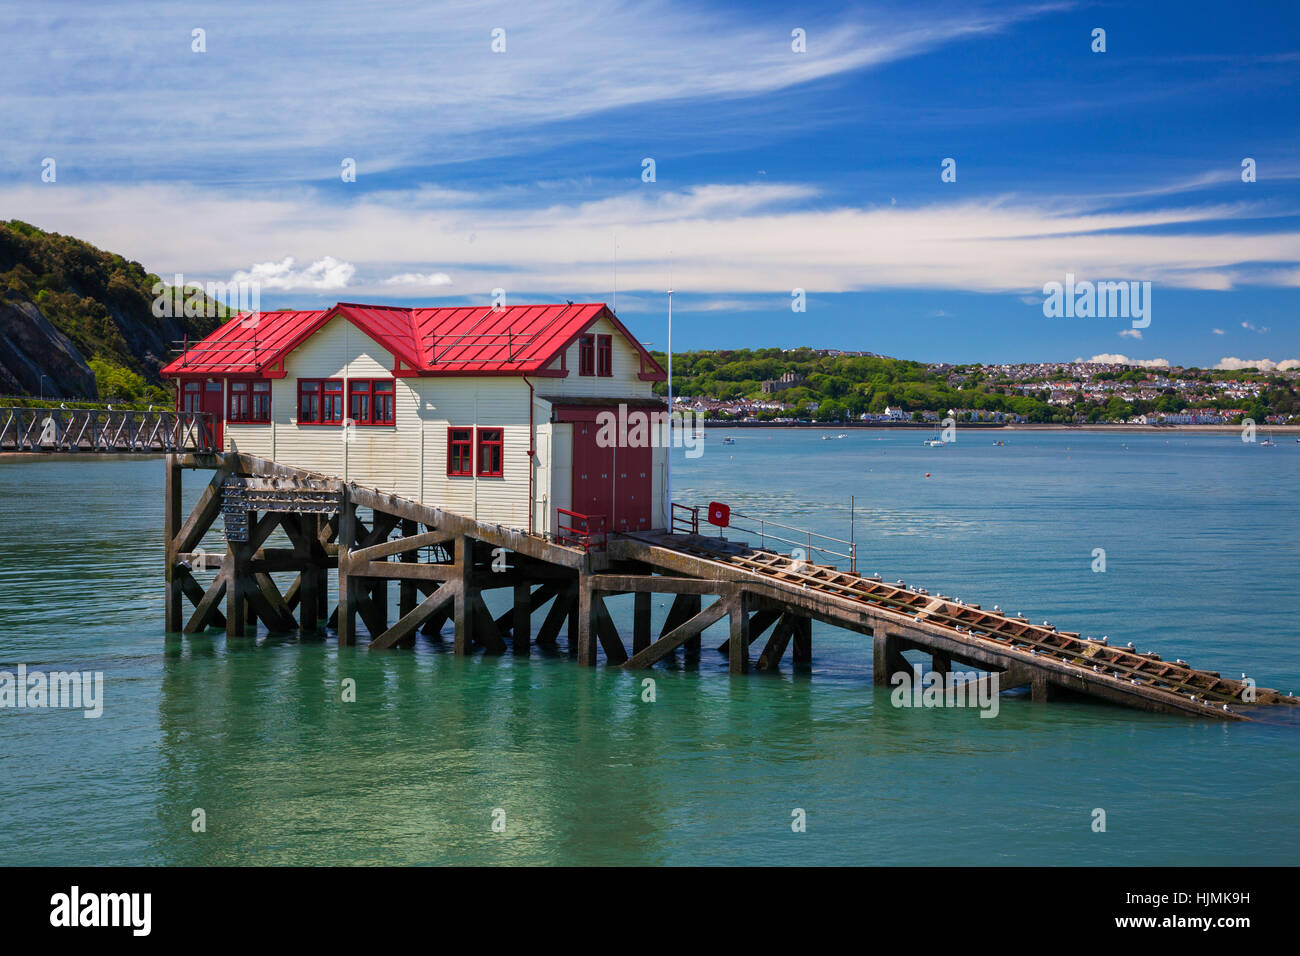 Mumbles Pier, Gower, Swansea, Wales, UK - Stock Image